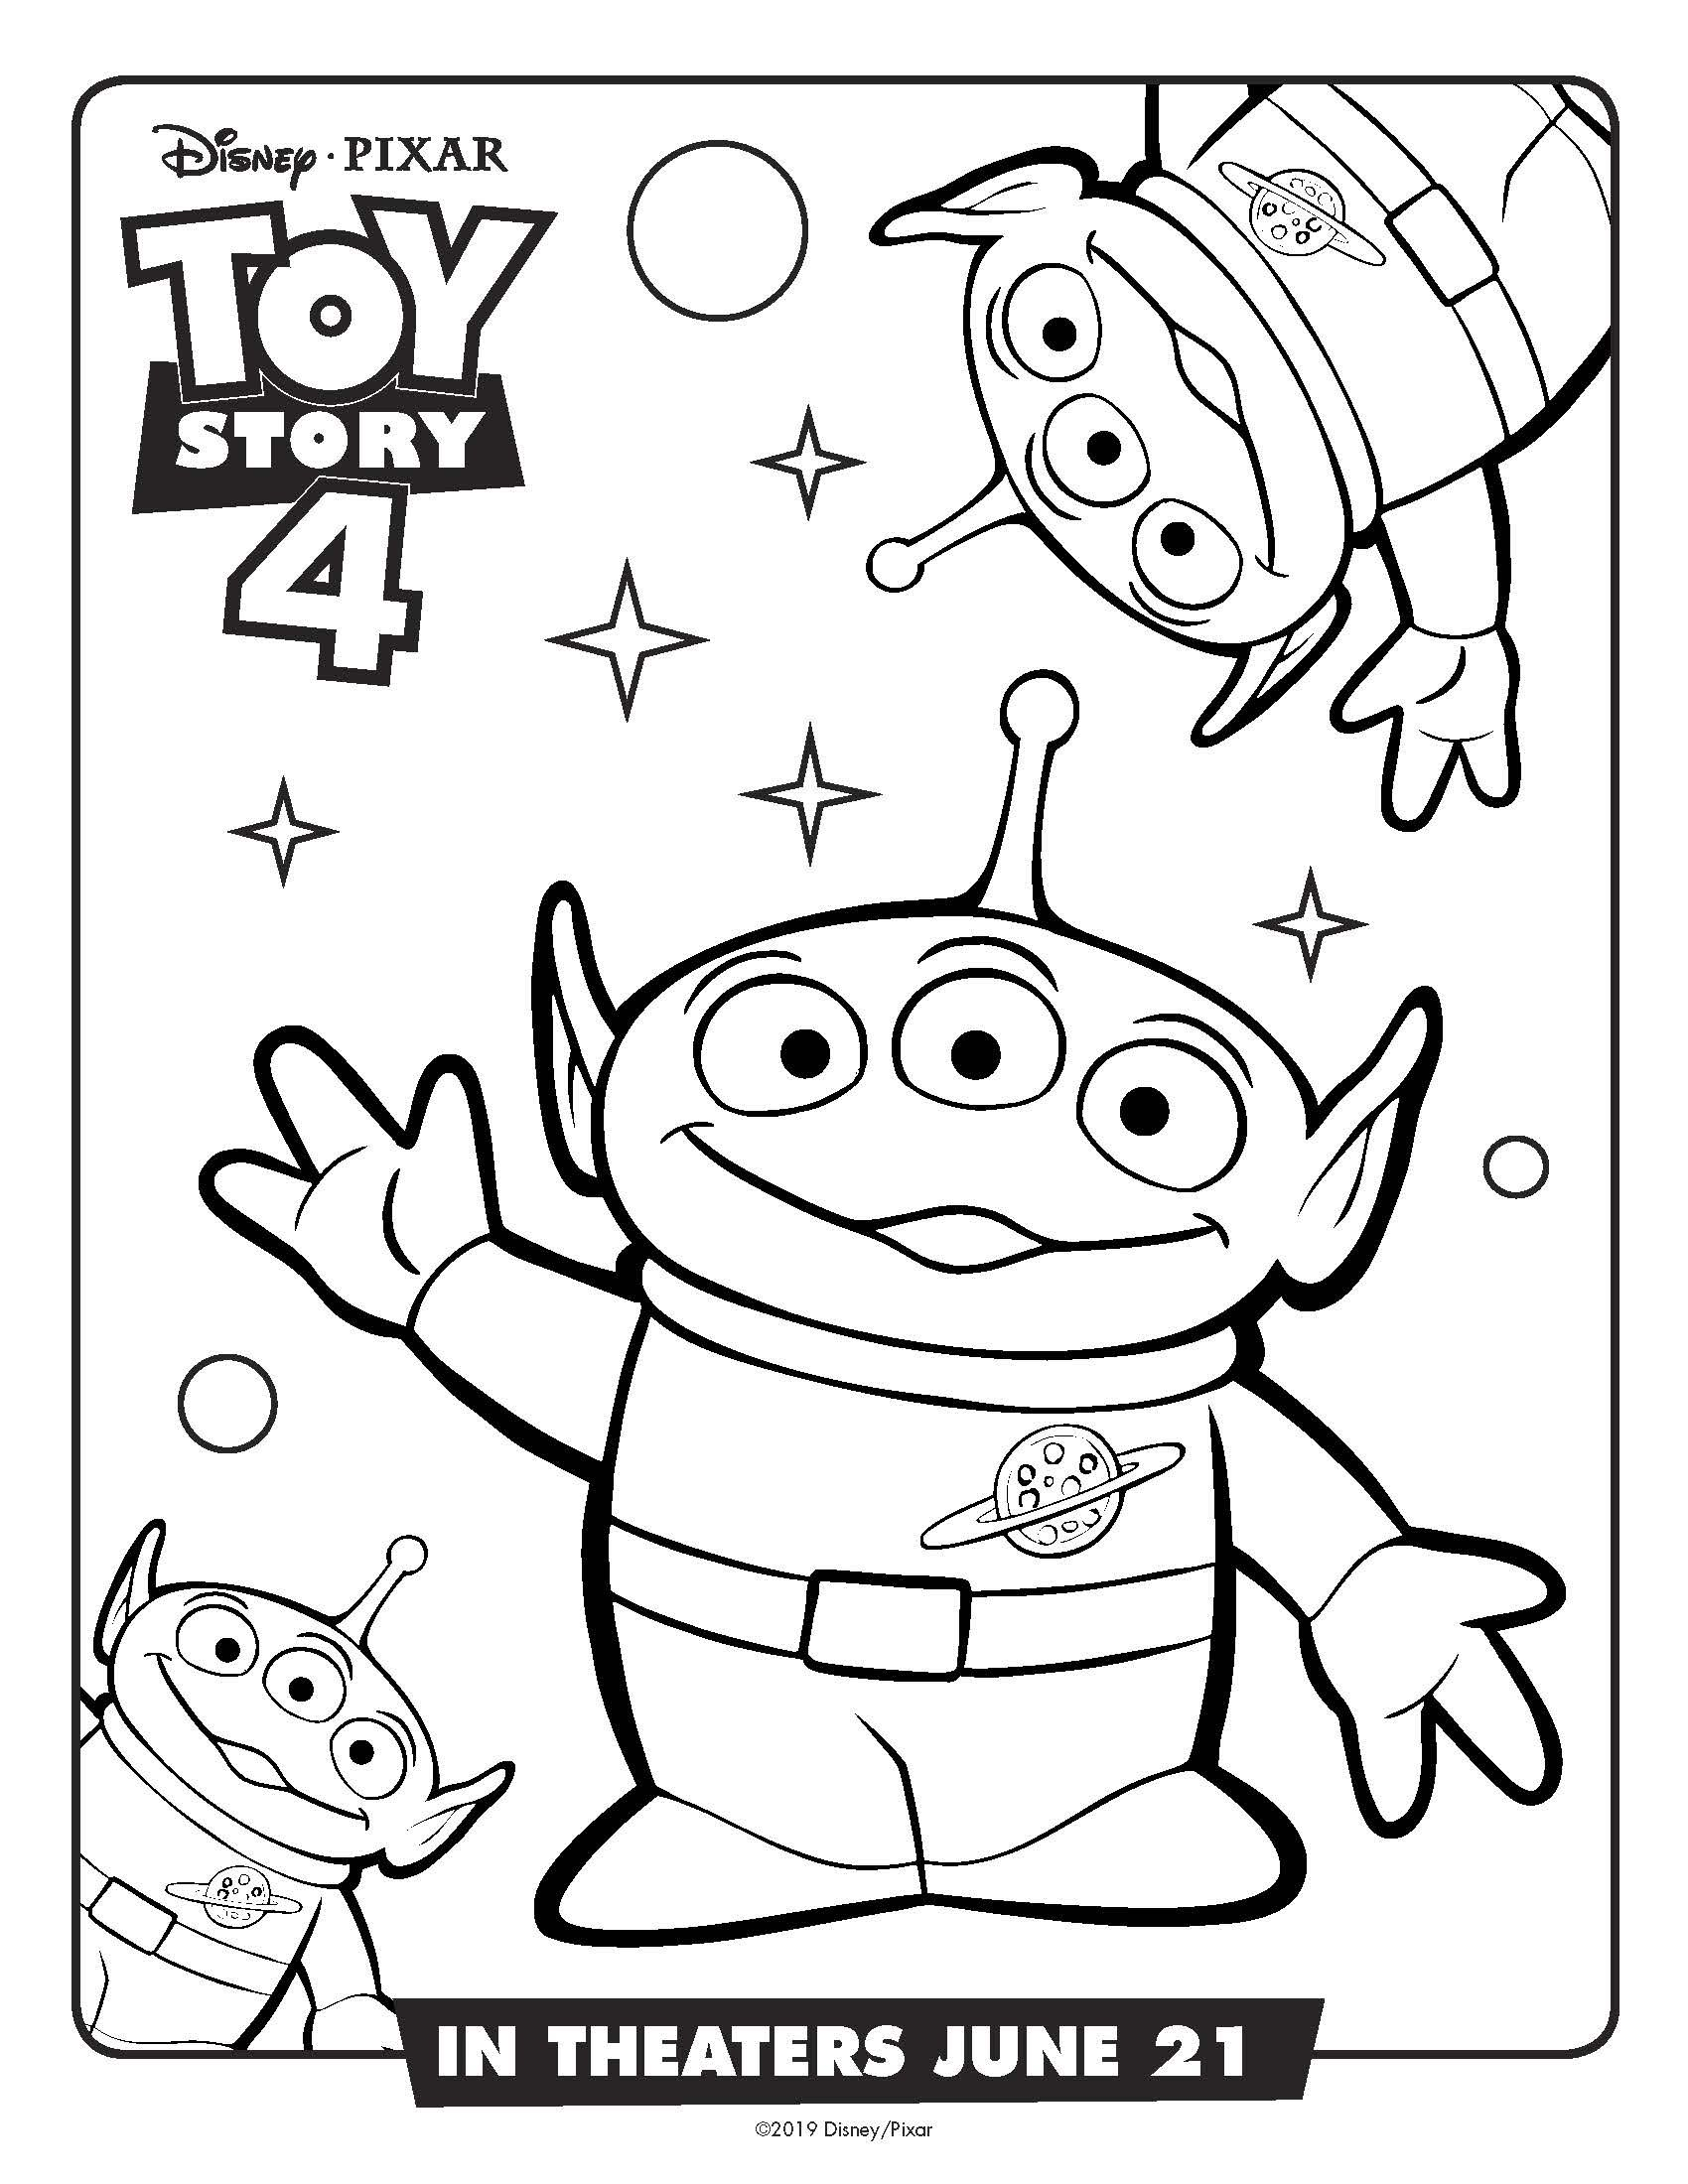 Rex Toy Story 4 Coloring Pages on a budget